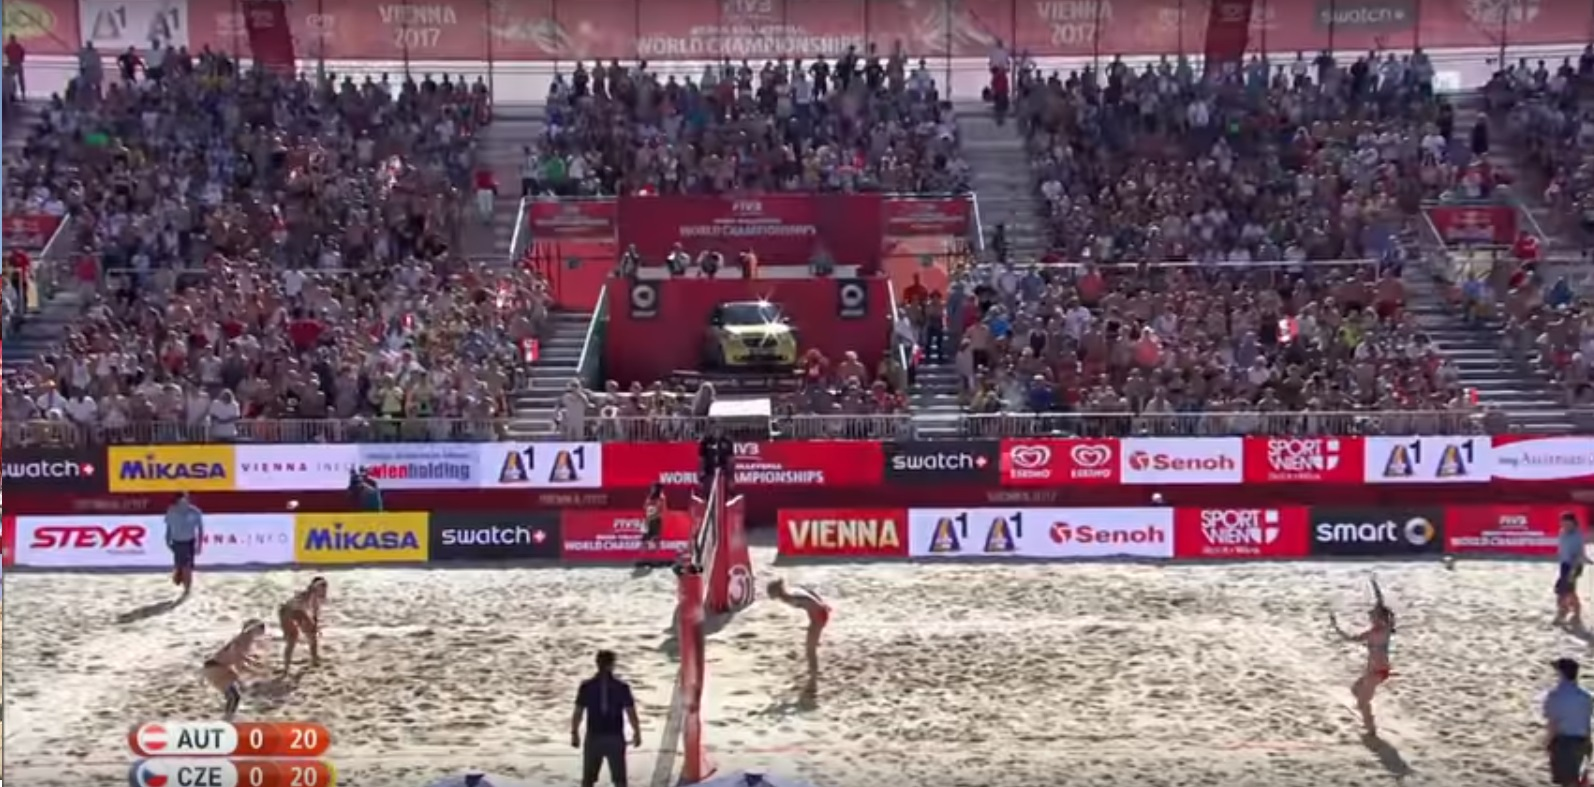 #WorldChampsVienna - surely not another save?